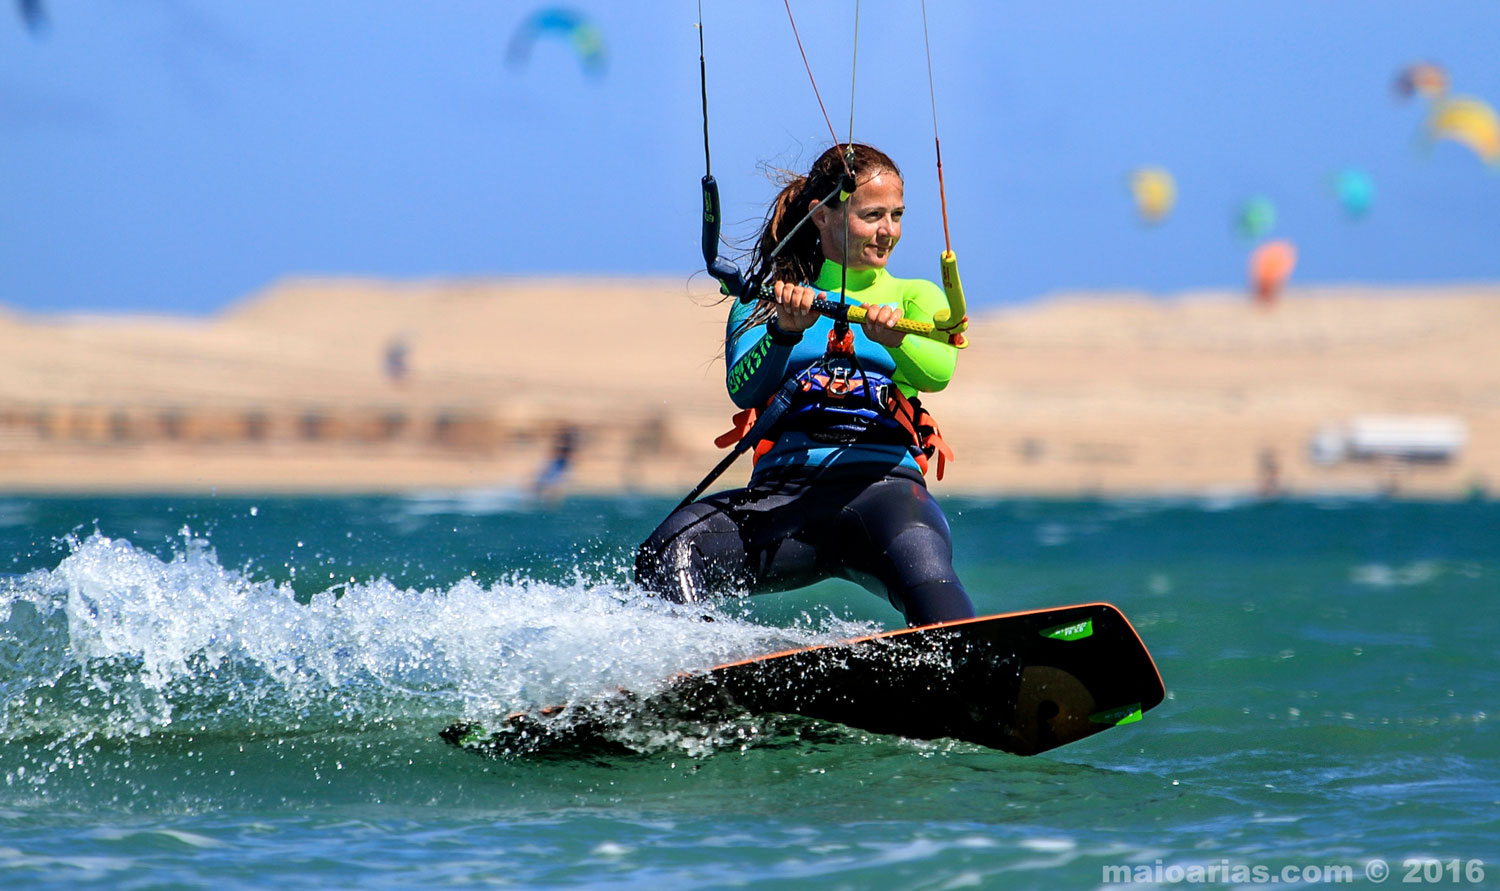 Kitesurfing-coaching-holiday-intermediate-to-advanced-dakhla.jpg